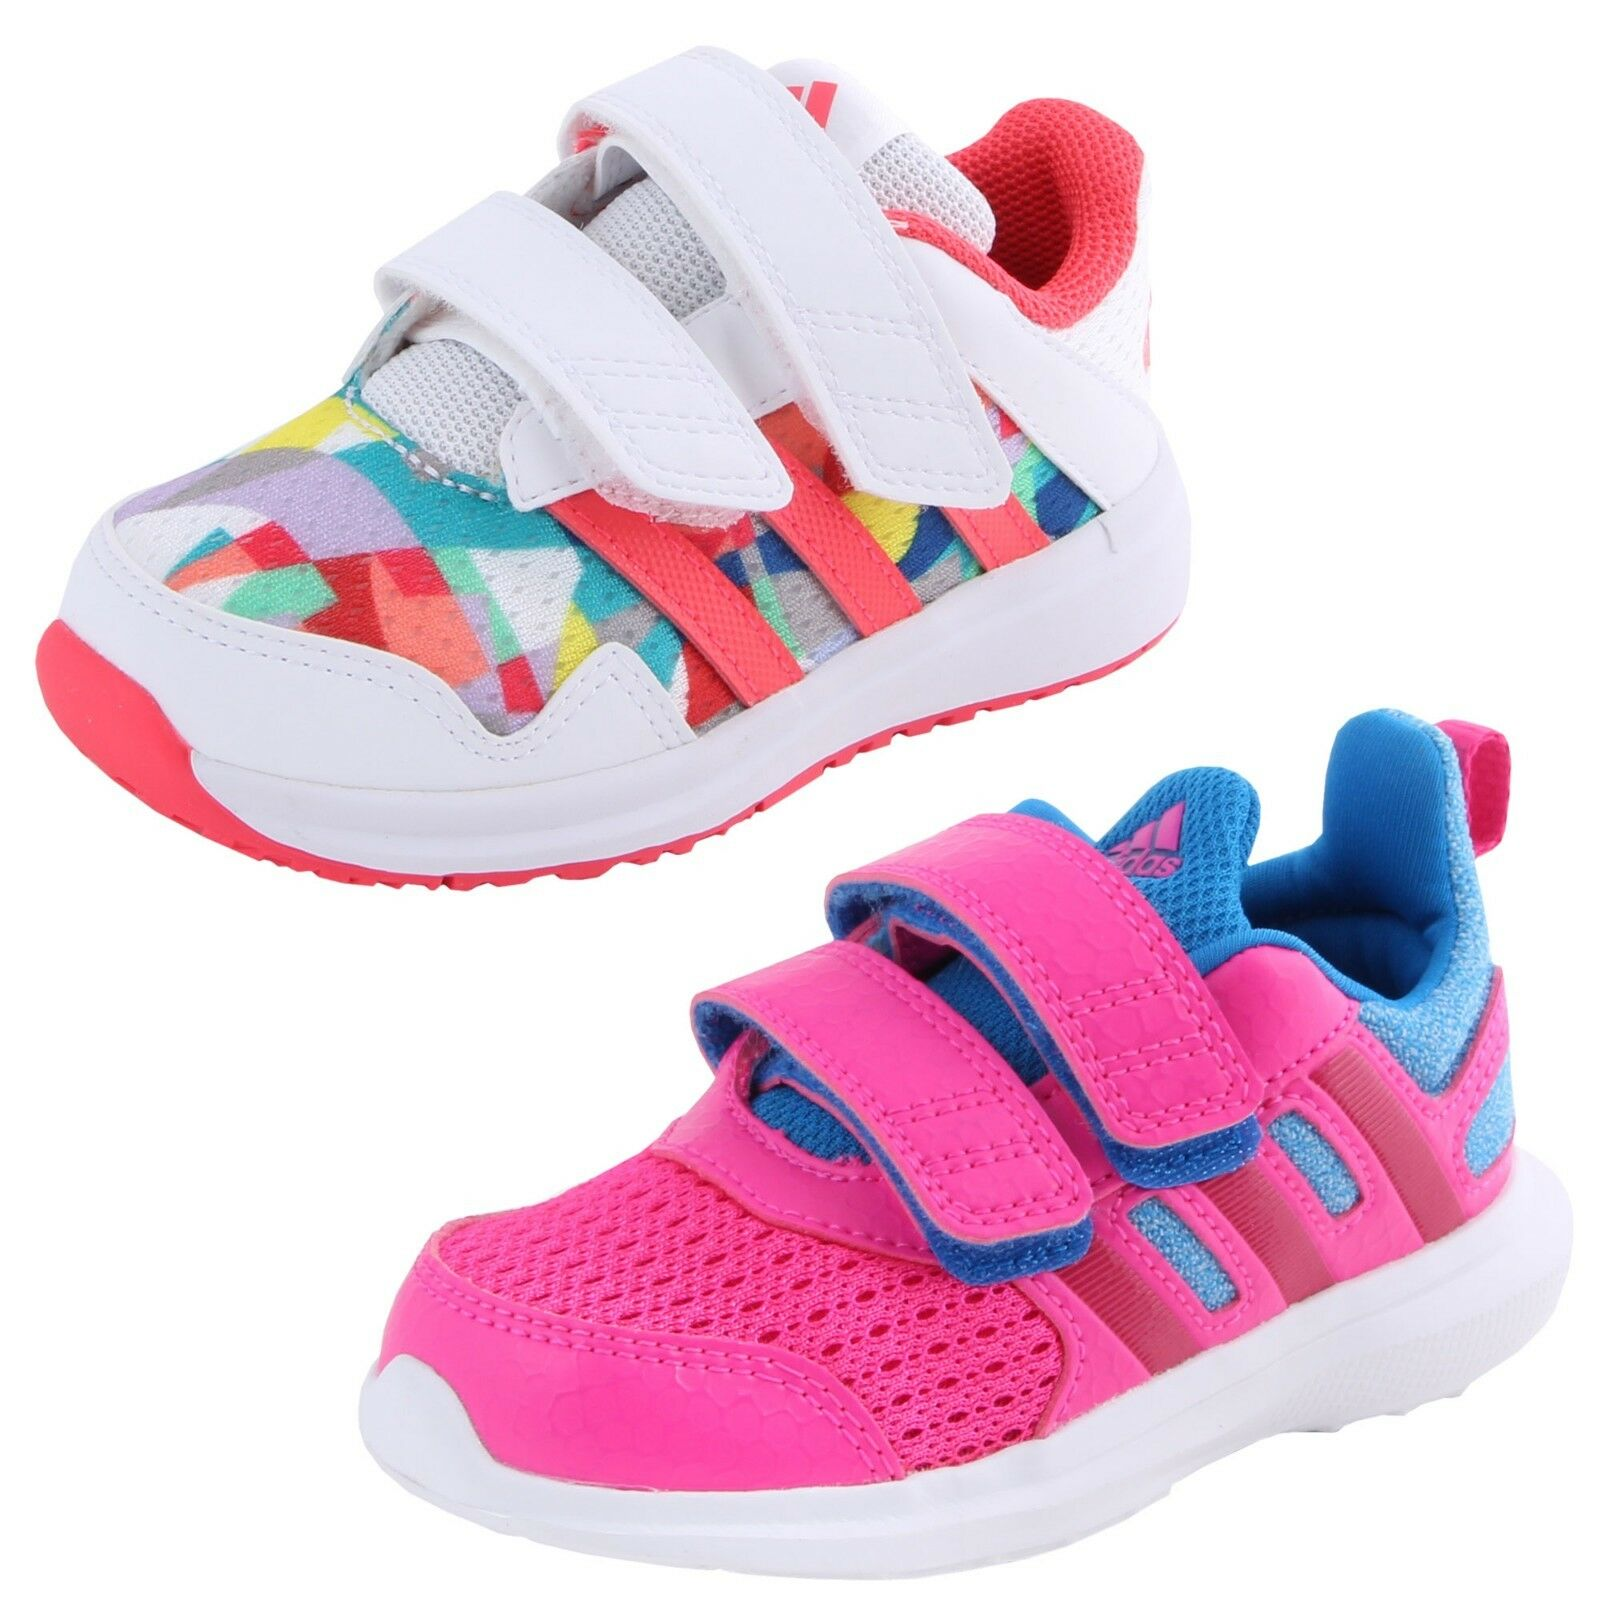 half off undefeated x excellent quality Adidas Kinderschuhe Hyperfast Test Vergleich +++ Adidas ...